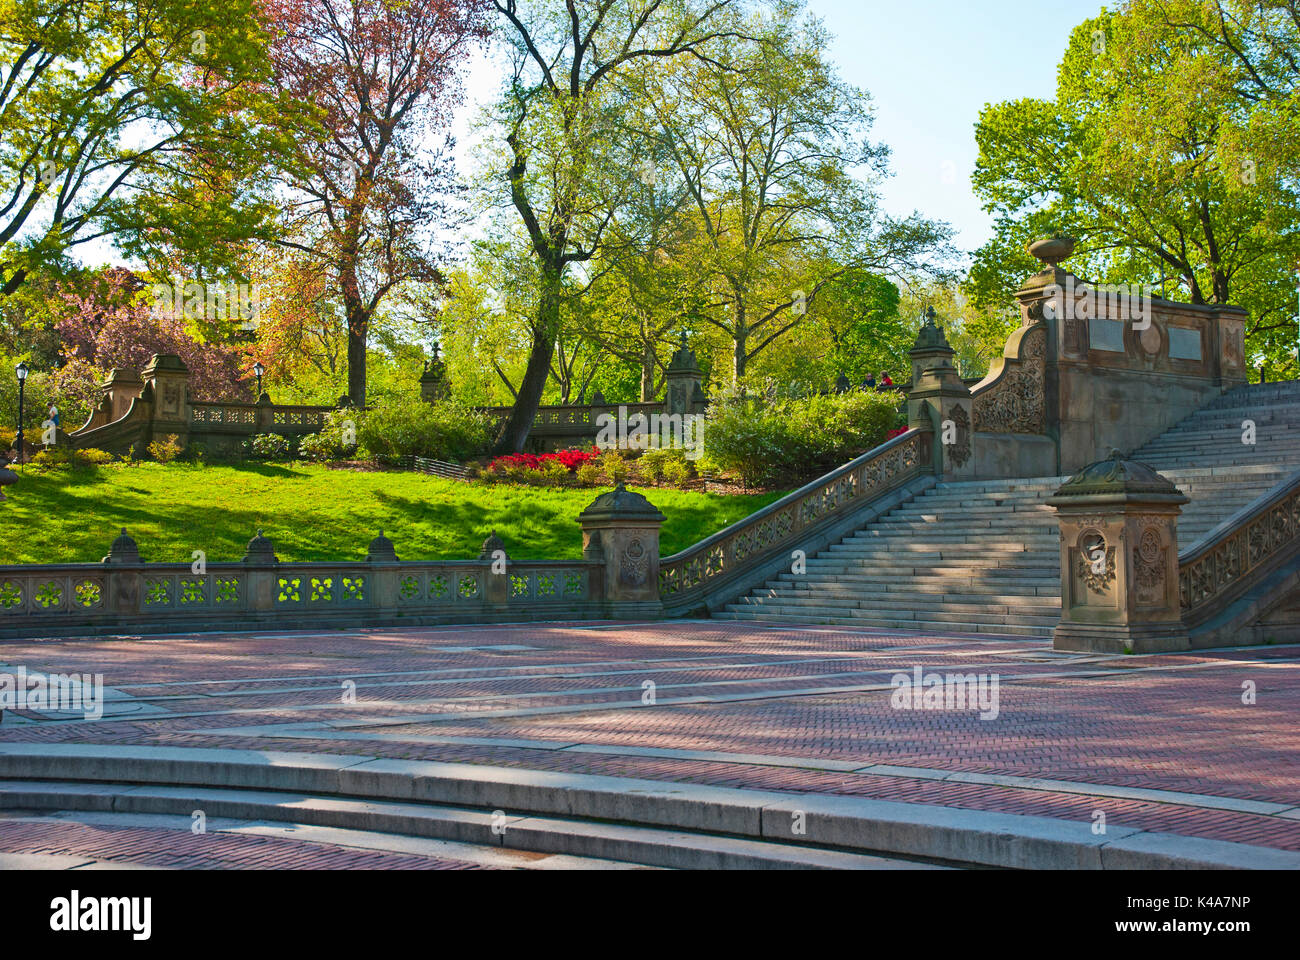 Stock Photo   View Of Bethesda Terrace Stairs In Central Park, New York